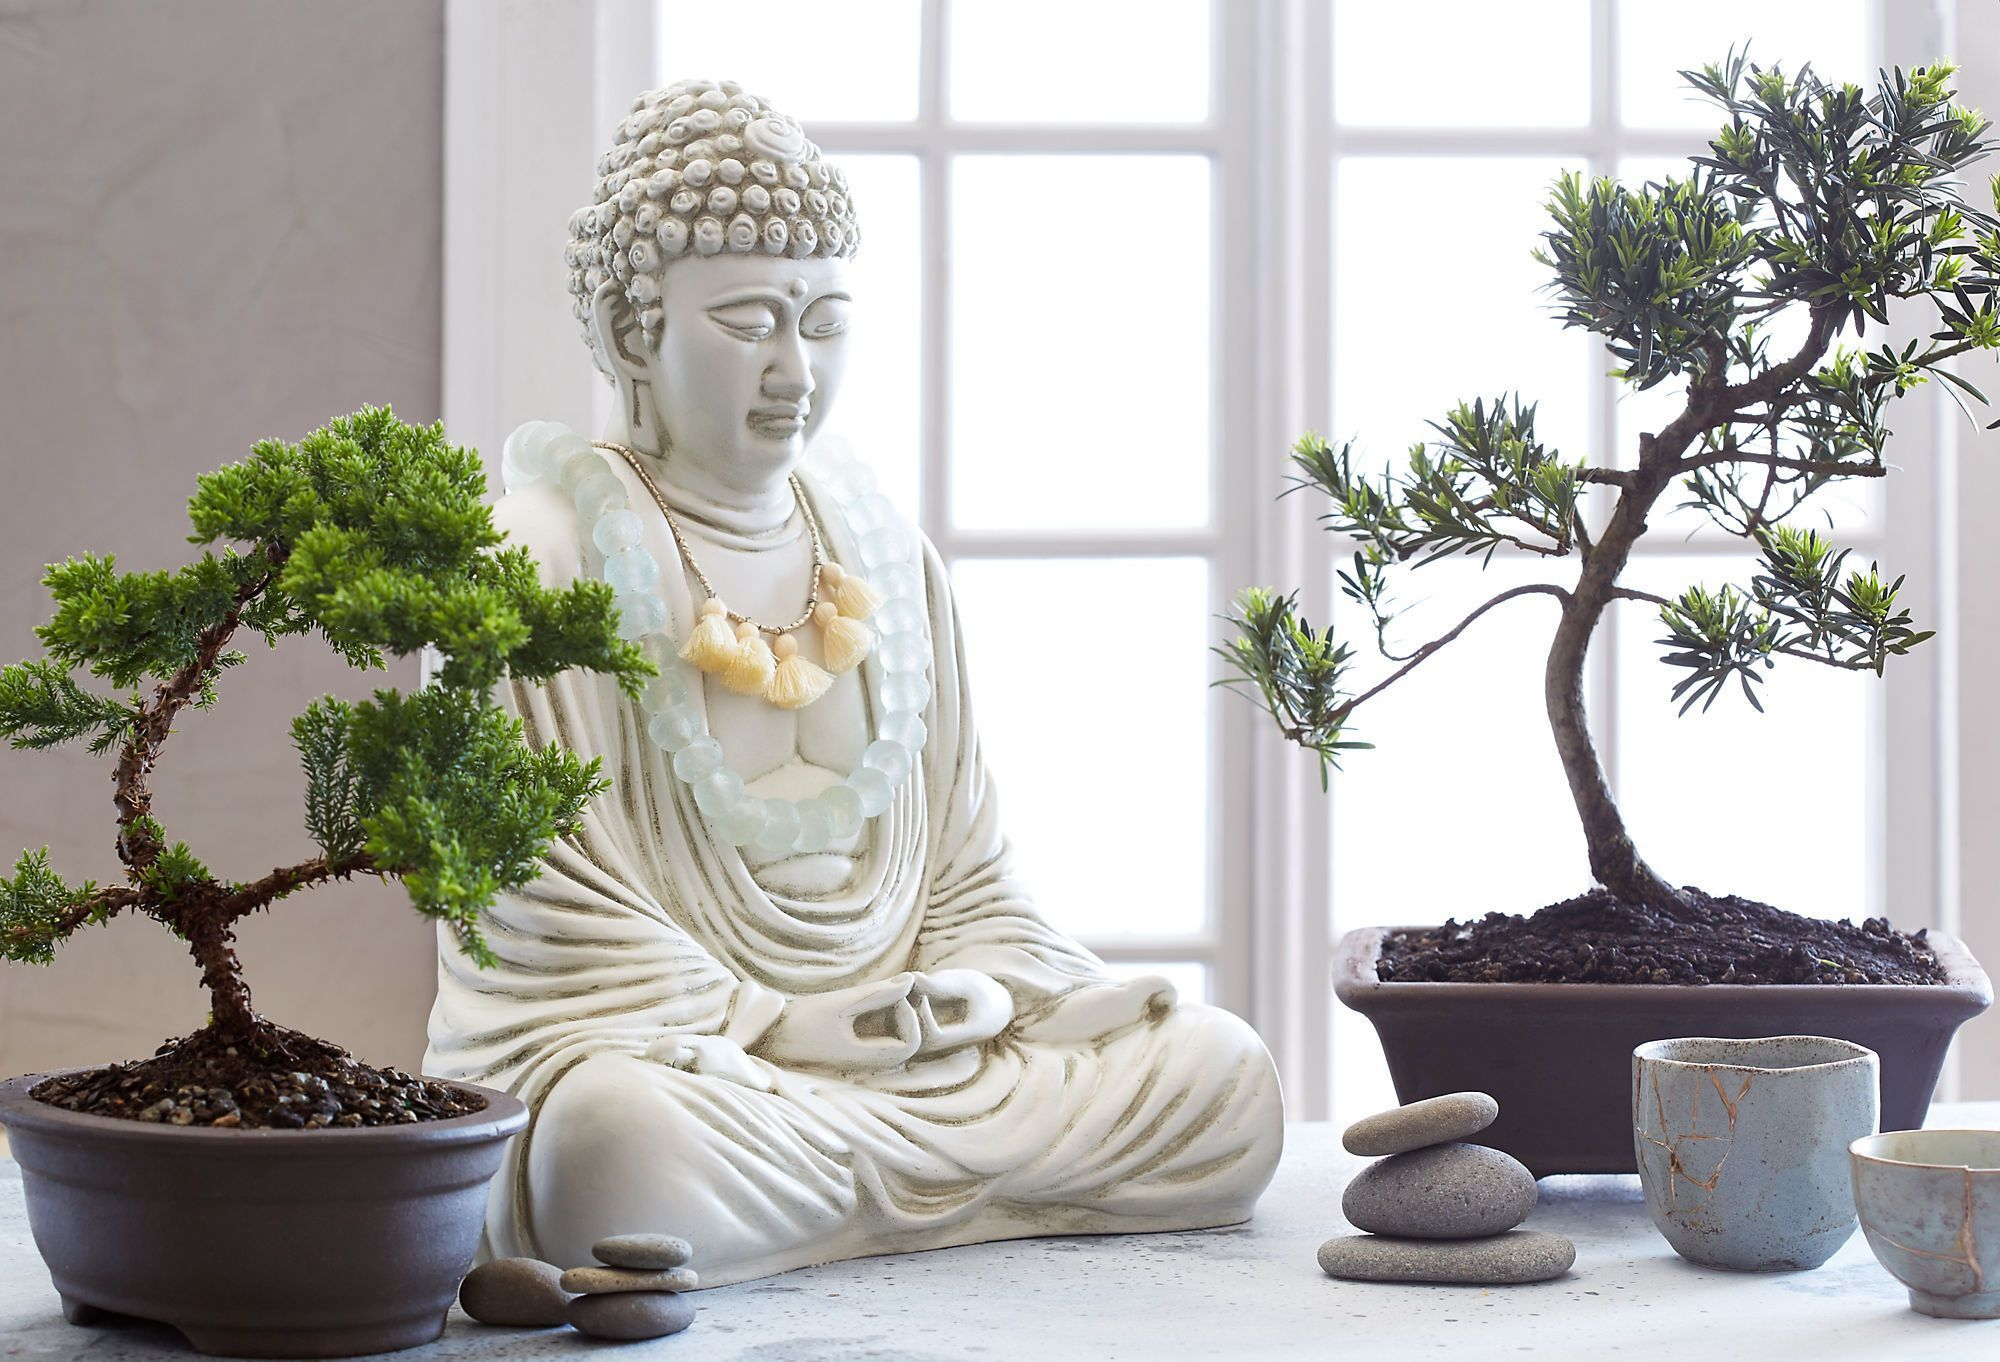 Indoor Zen Garden Ideas Serenity Now Zen Garden Finds For Indoors And Out Decor